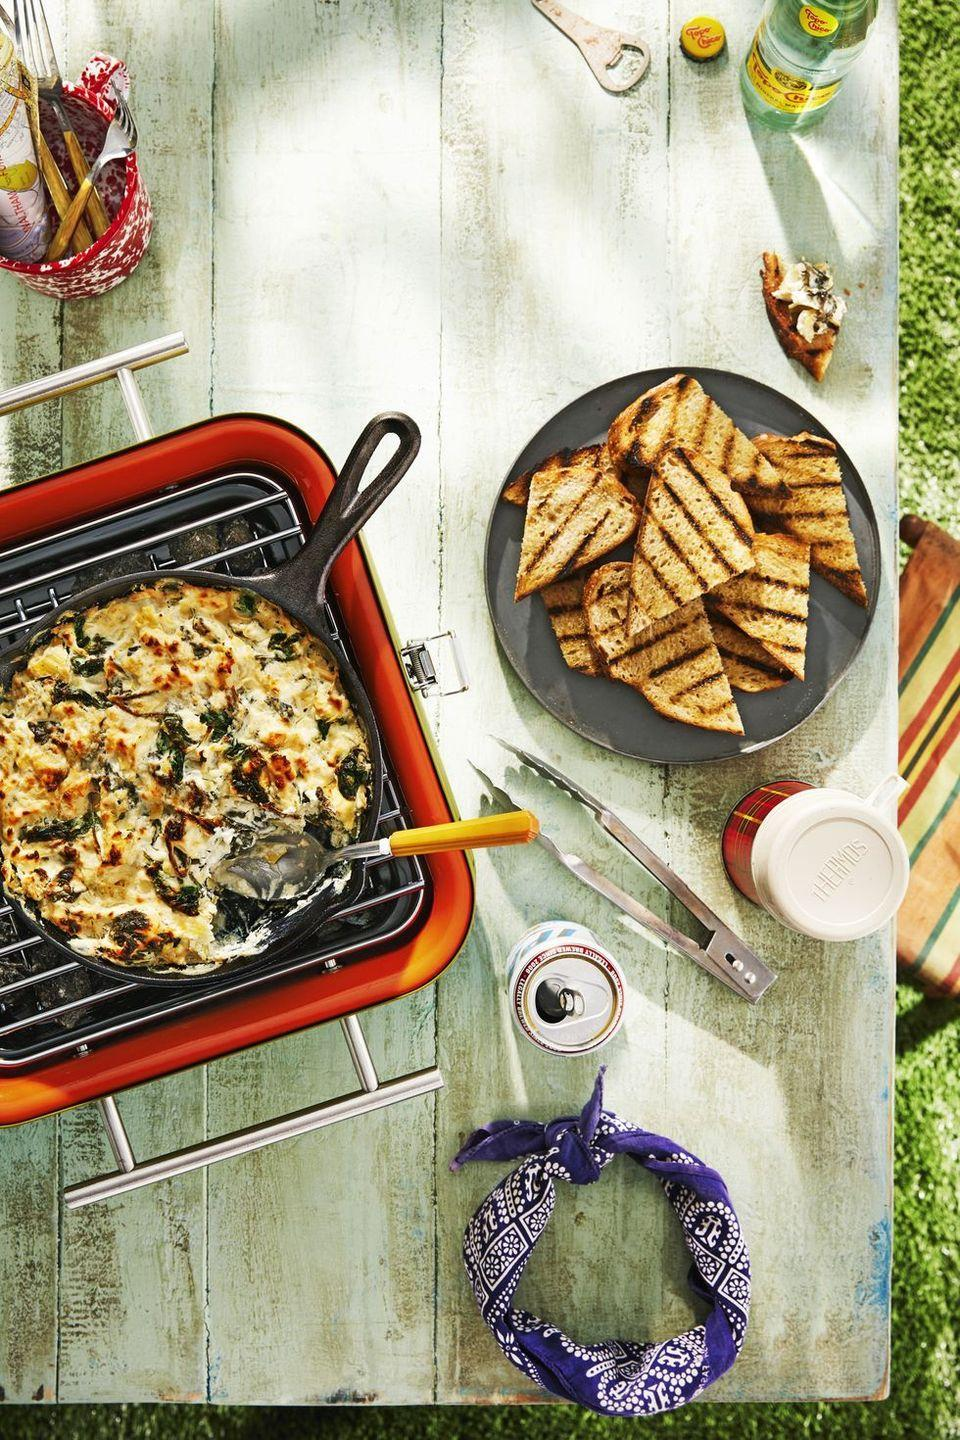 """<p>Classic spinach dip gets a big upgrade from some smoky flavoring.</p><p><strong><a href=""""https://www.countryliving.com/food-drinks/a28071095/skillet-spinach-artichoke-dip-with-fire-roasted-bread-recipe/"""" rel=""""nofollow noopener"""" target=""""_blank"""" data-ylk=""""slk:Get the recipe"""" class=""""link rapid-noclick-resp"""">Get the recipe</a>.</strong></p><p><strong><a class=""""link rapid-noclick-resp"""" href=""""https://www.amazon.com/Pop-Up-Fire-Pit-Portable-Quad-Fold/dp/B07QC4117N/?tag=syn-yahoo-20&ascsubtag=%5Bartid%7C10050.g.936%5Bsrc%7Cyahoo-us"""" rel=""""nofollow noopener"""" target=""""_blank"""" data-ylk=""""slk:SHOP WOOD FIRE GRILLS"""">SHOP WOOD FIRE GRILLS</a><br></strong></p>"""